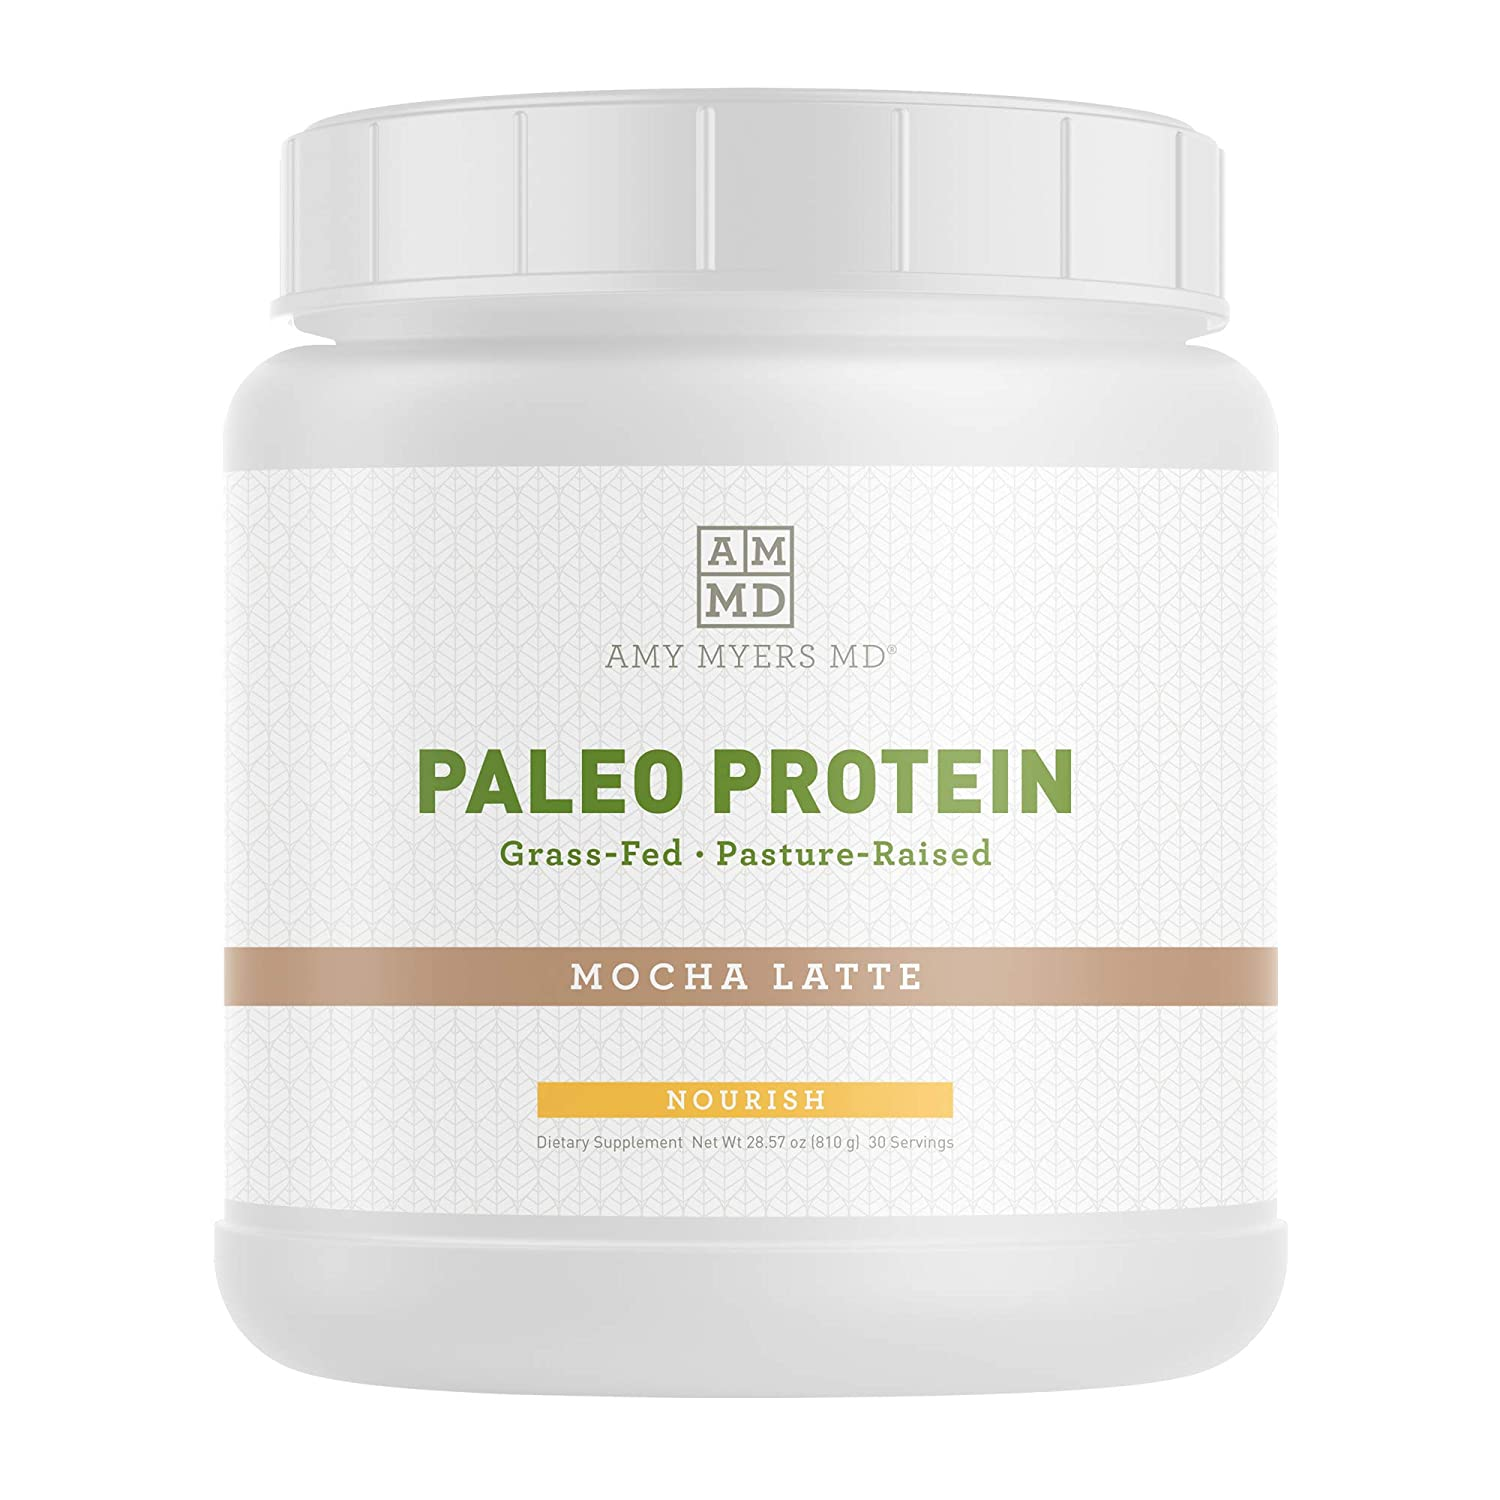 Mocha Latte Pure Paleo Protein by Dr Amy Myers Clean Grass Fed, Pasture Raised Hormone Free Protein, Non-GMO, Gluten Dairy Free 21g Protein Per Serving Mocha Shake for Paleo and Keto